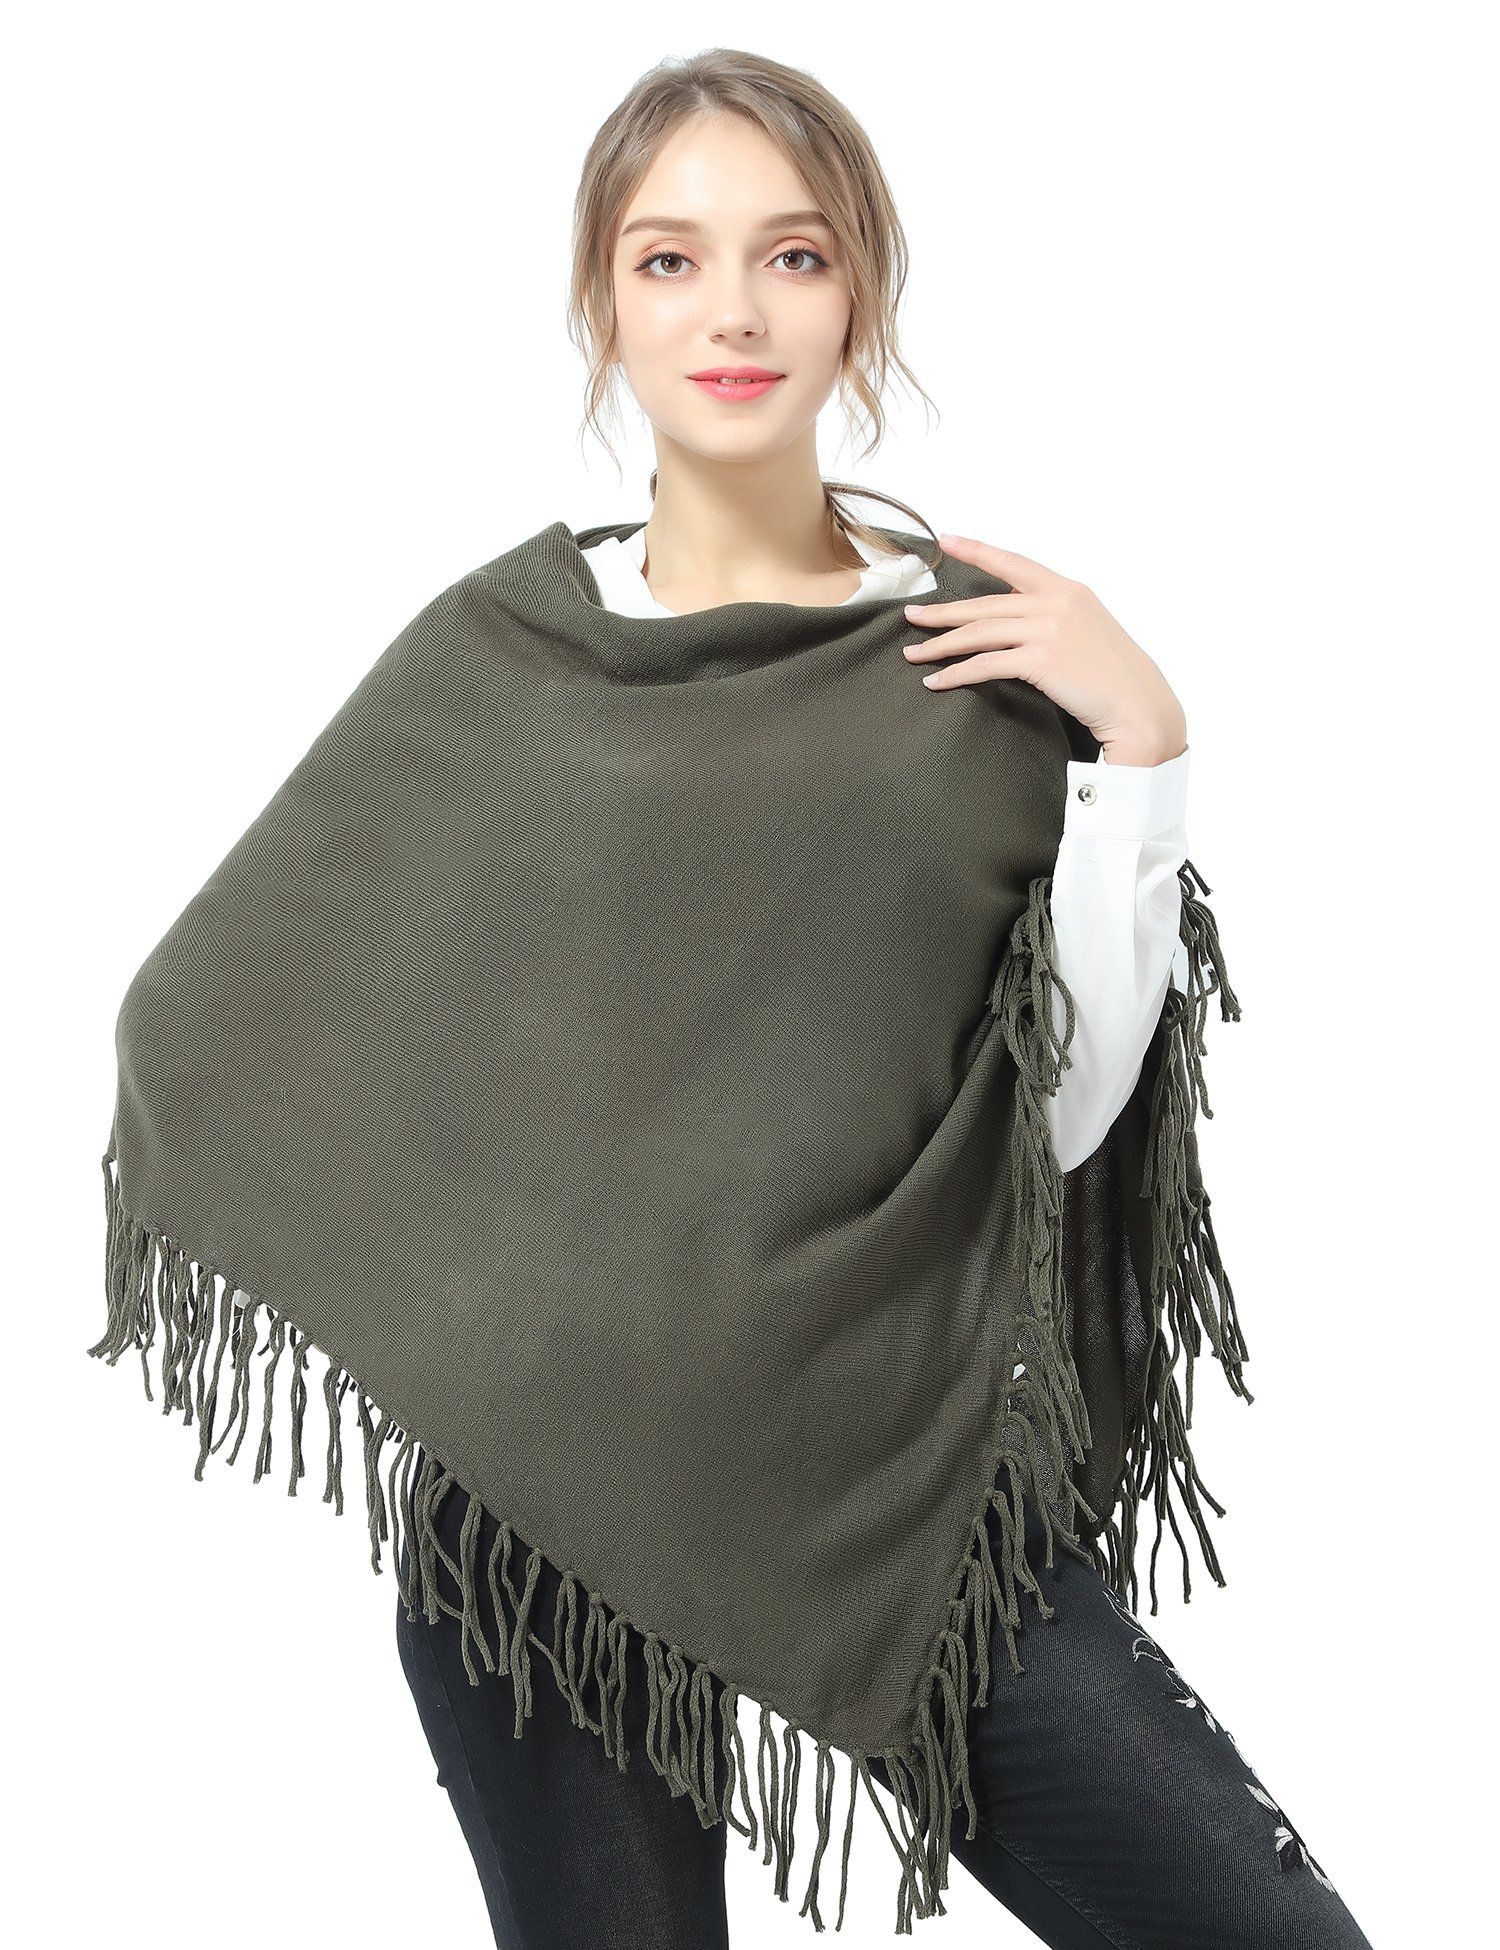 Joulli Women's Knitted Asymmetric Poncho Wrap Shawl Green, One Size by Joulli